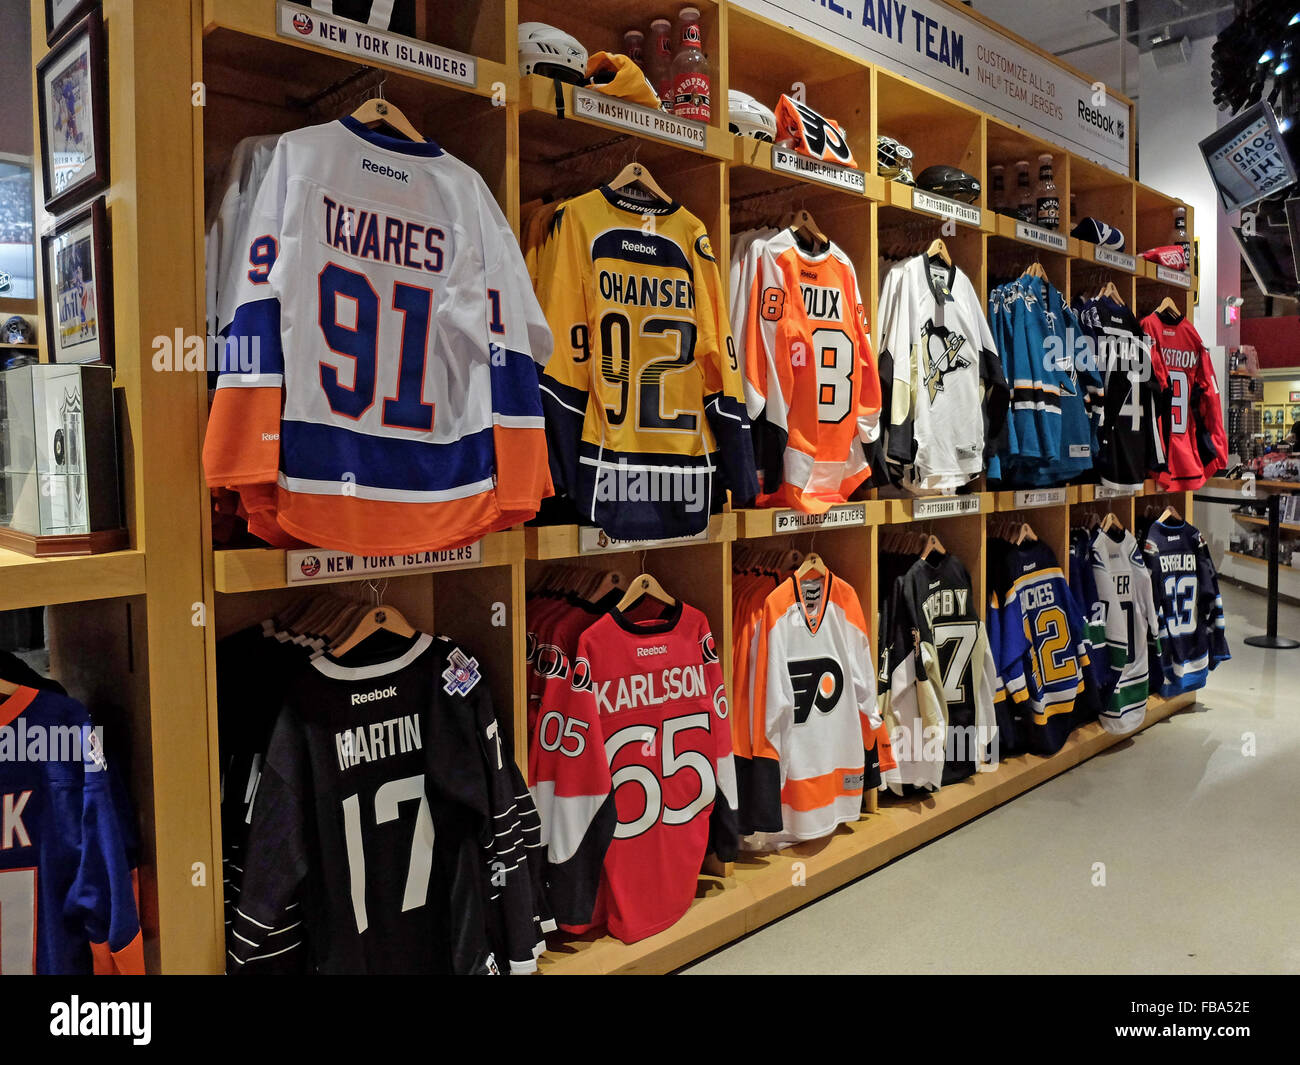 4b53591f7a9 NHL hockey players sweaters for sale at the NHL store on Avenue of the  Americas in Midtown Manhattan, New York City.